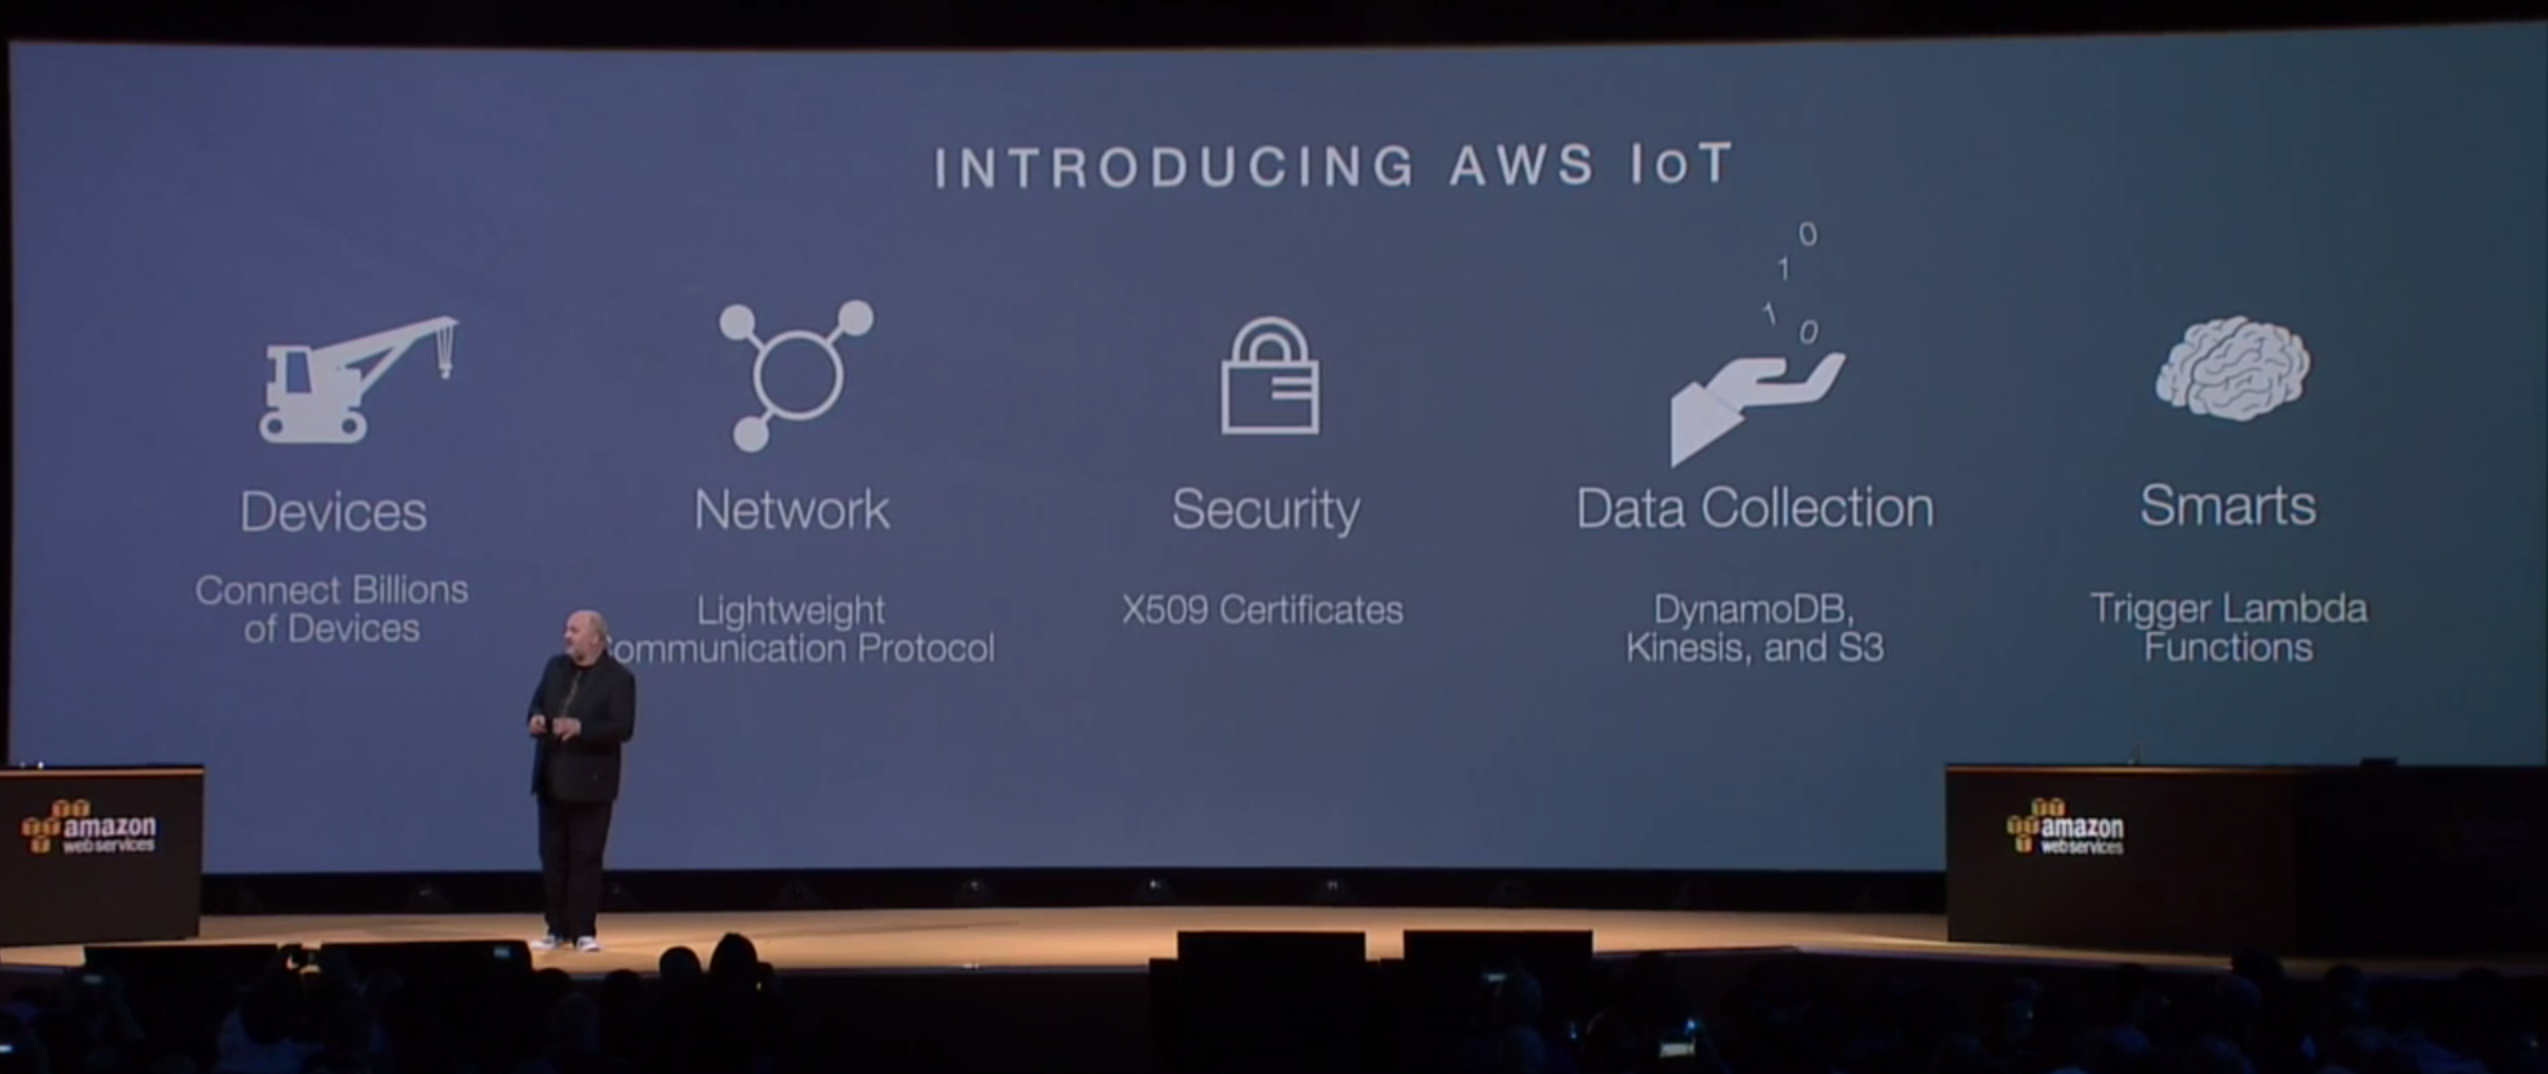 Werner Vogels announces Amazon IoT at the AWS re:Invent conference in Las Vegas on Oct. 8.